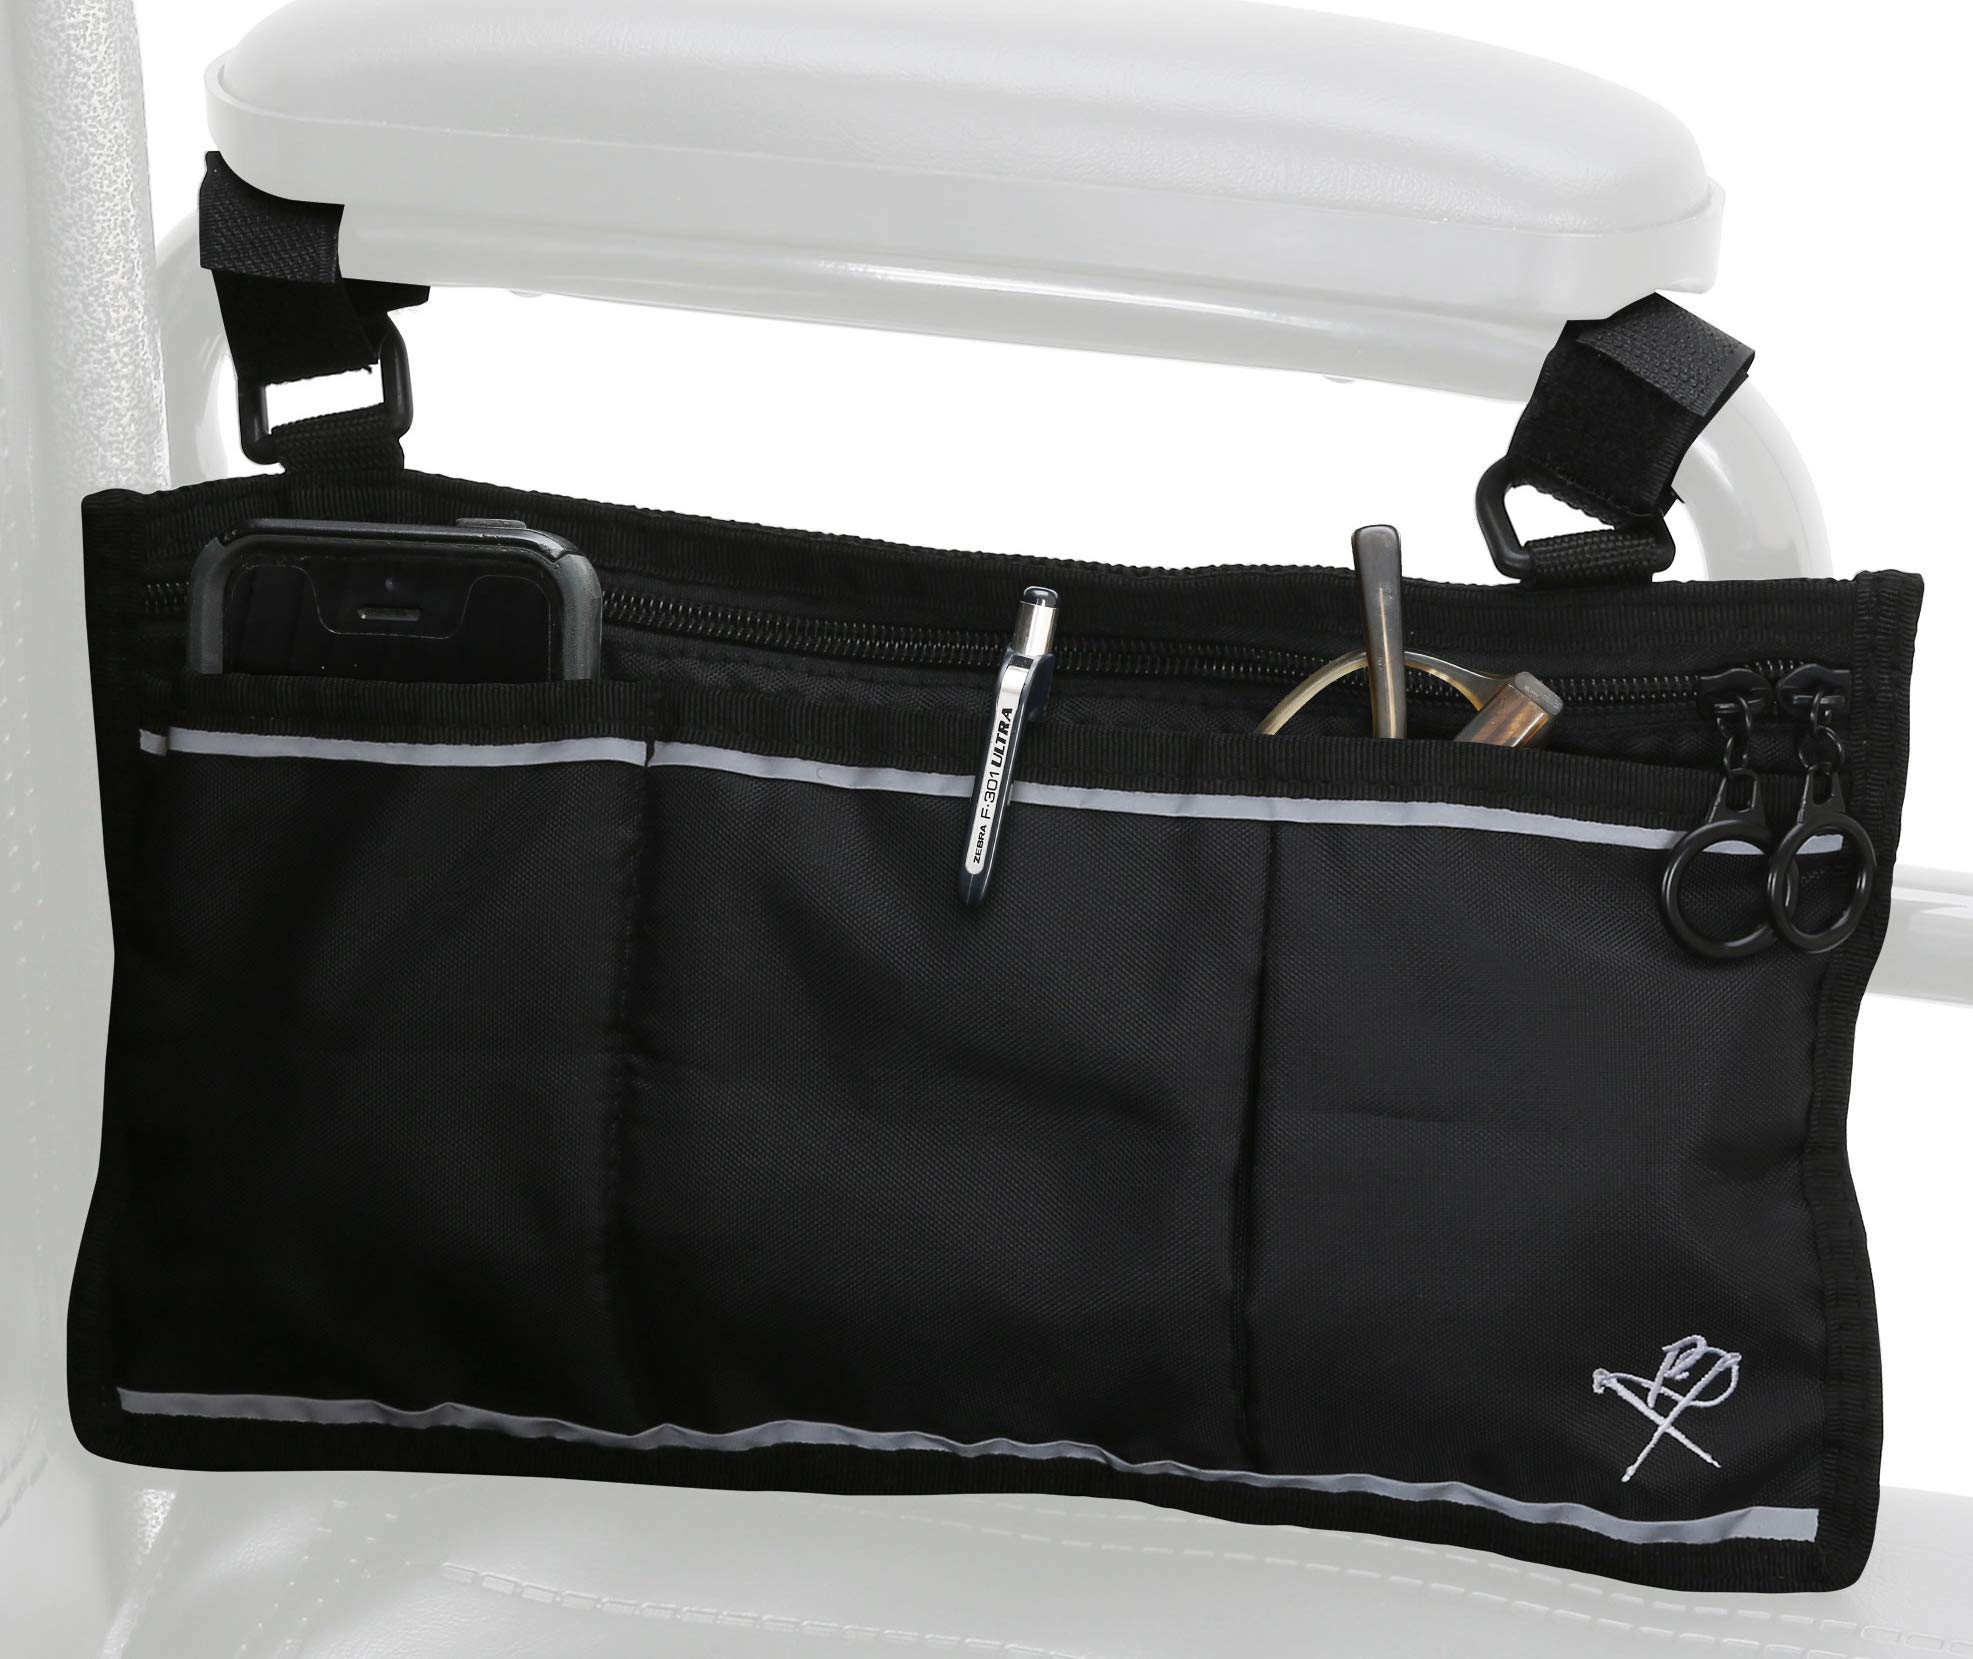 Pembrook Wheelchair Side Bag - Black - Great Accessory for Your Mobility Devices. Fits Most Scooters, Walkers, Rollators - Manual, Powered or Electric Wheelchairs by Pembrook